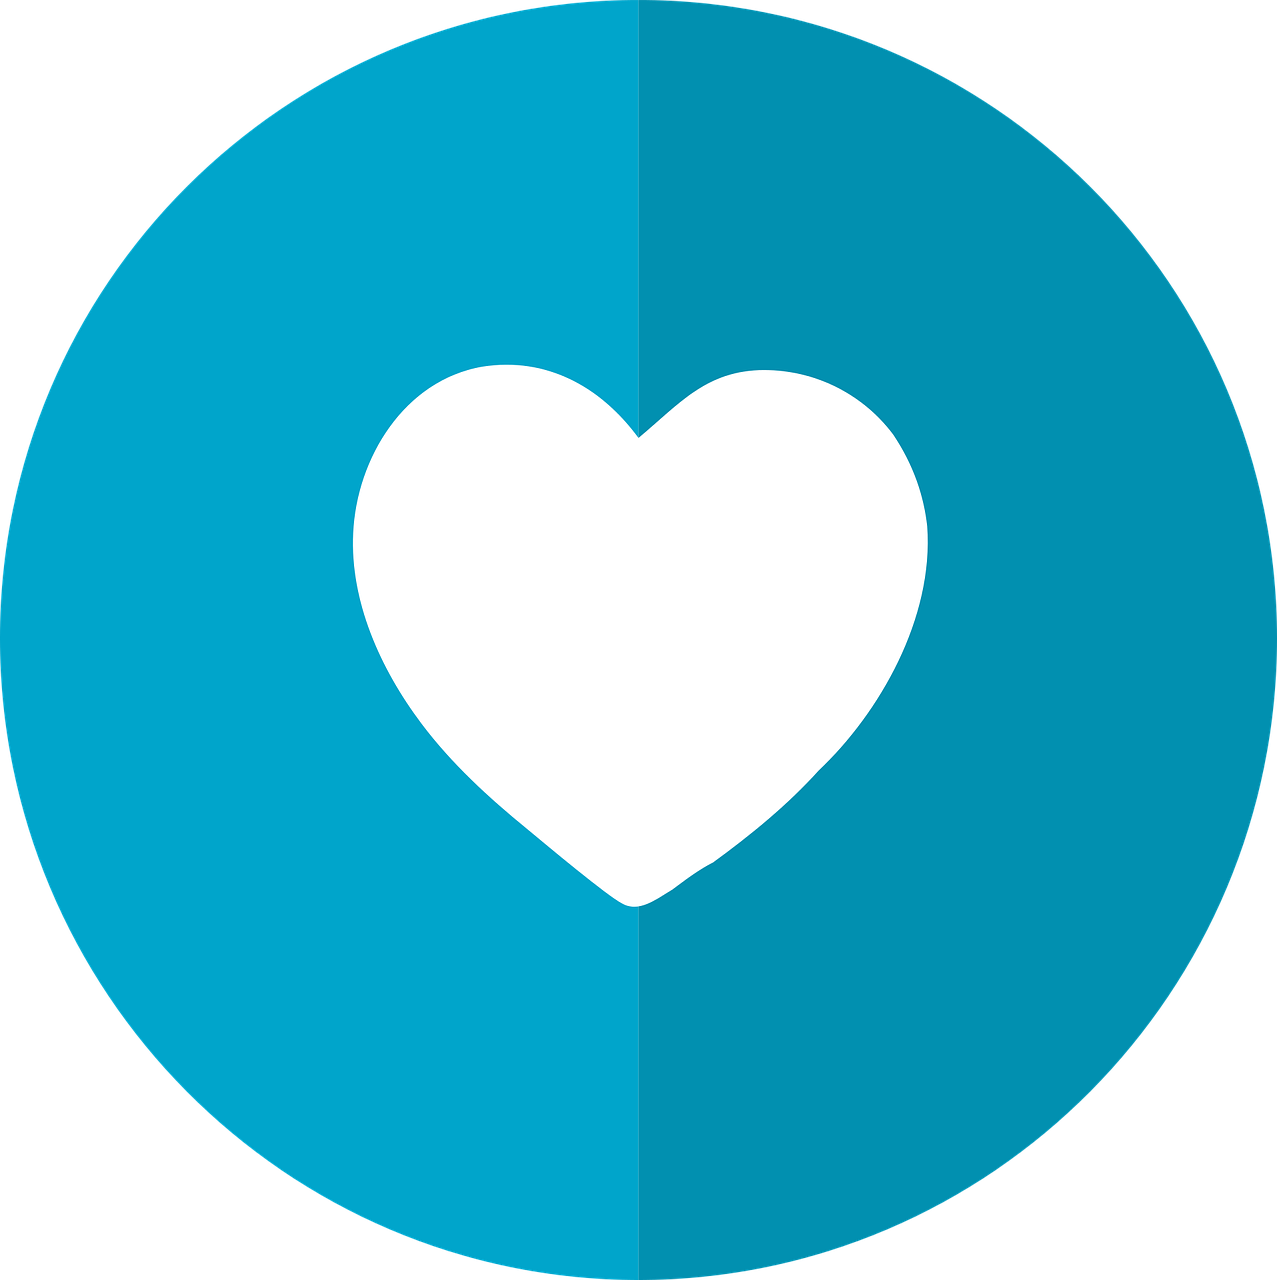 heart-icon-2316451_1280.png